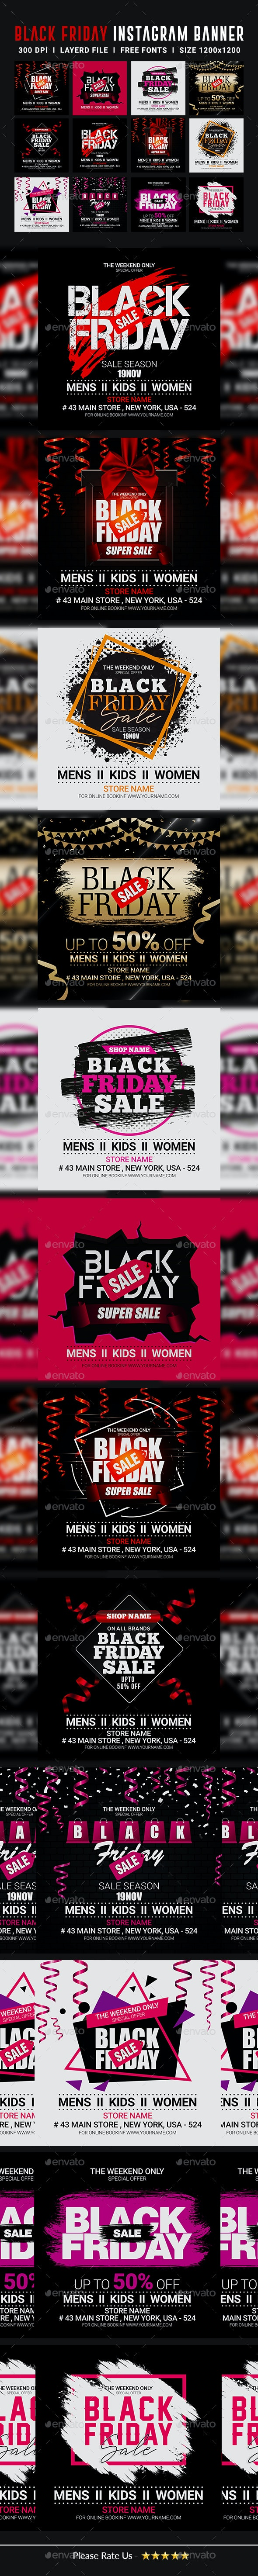 12 Black Friday Instagram Banners